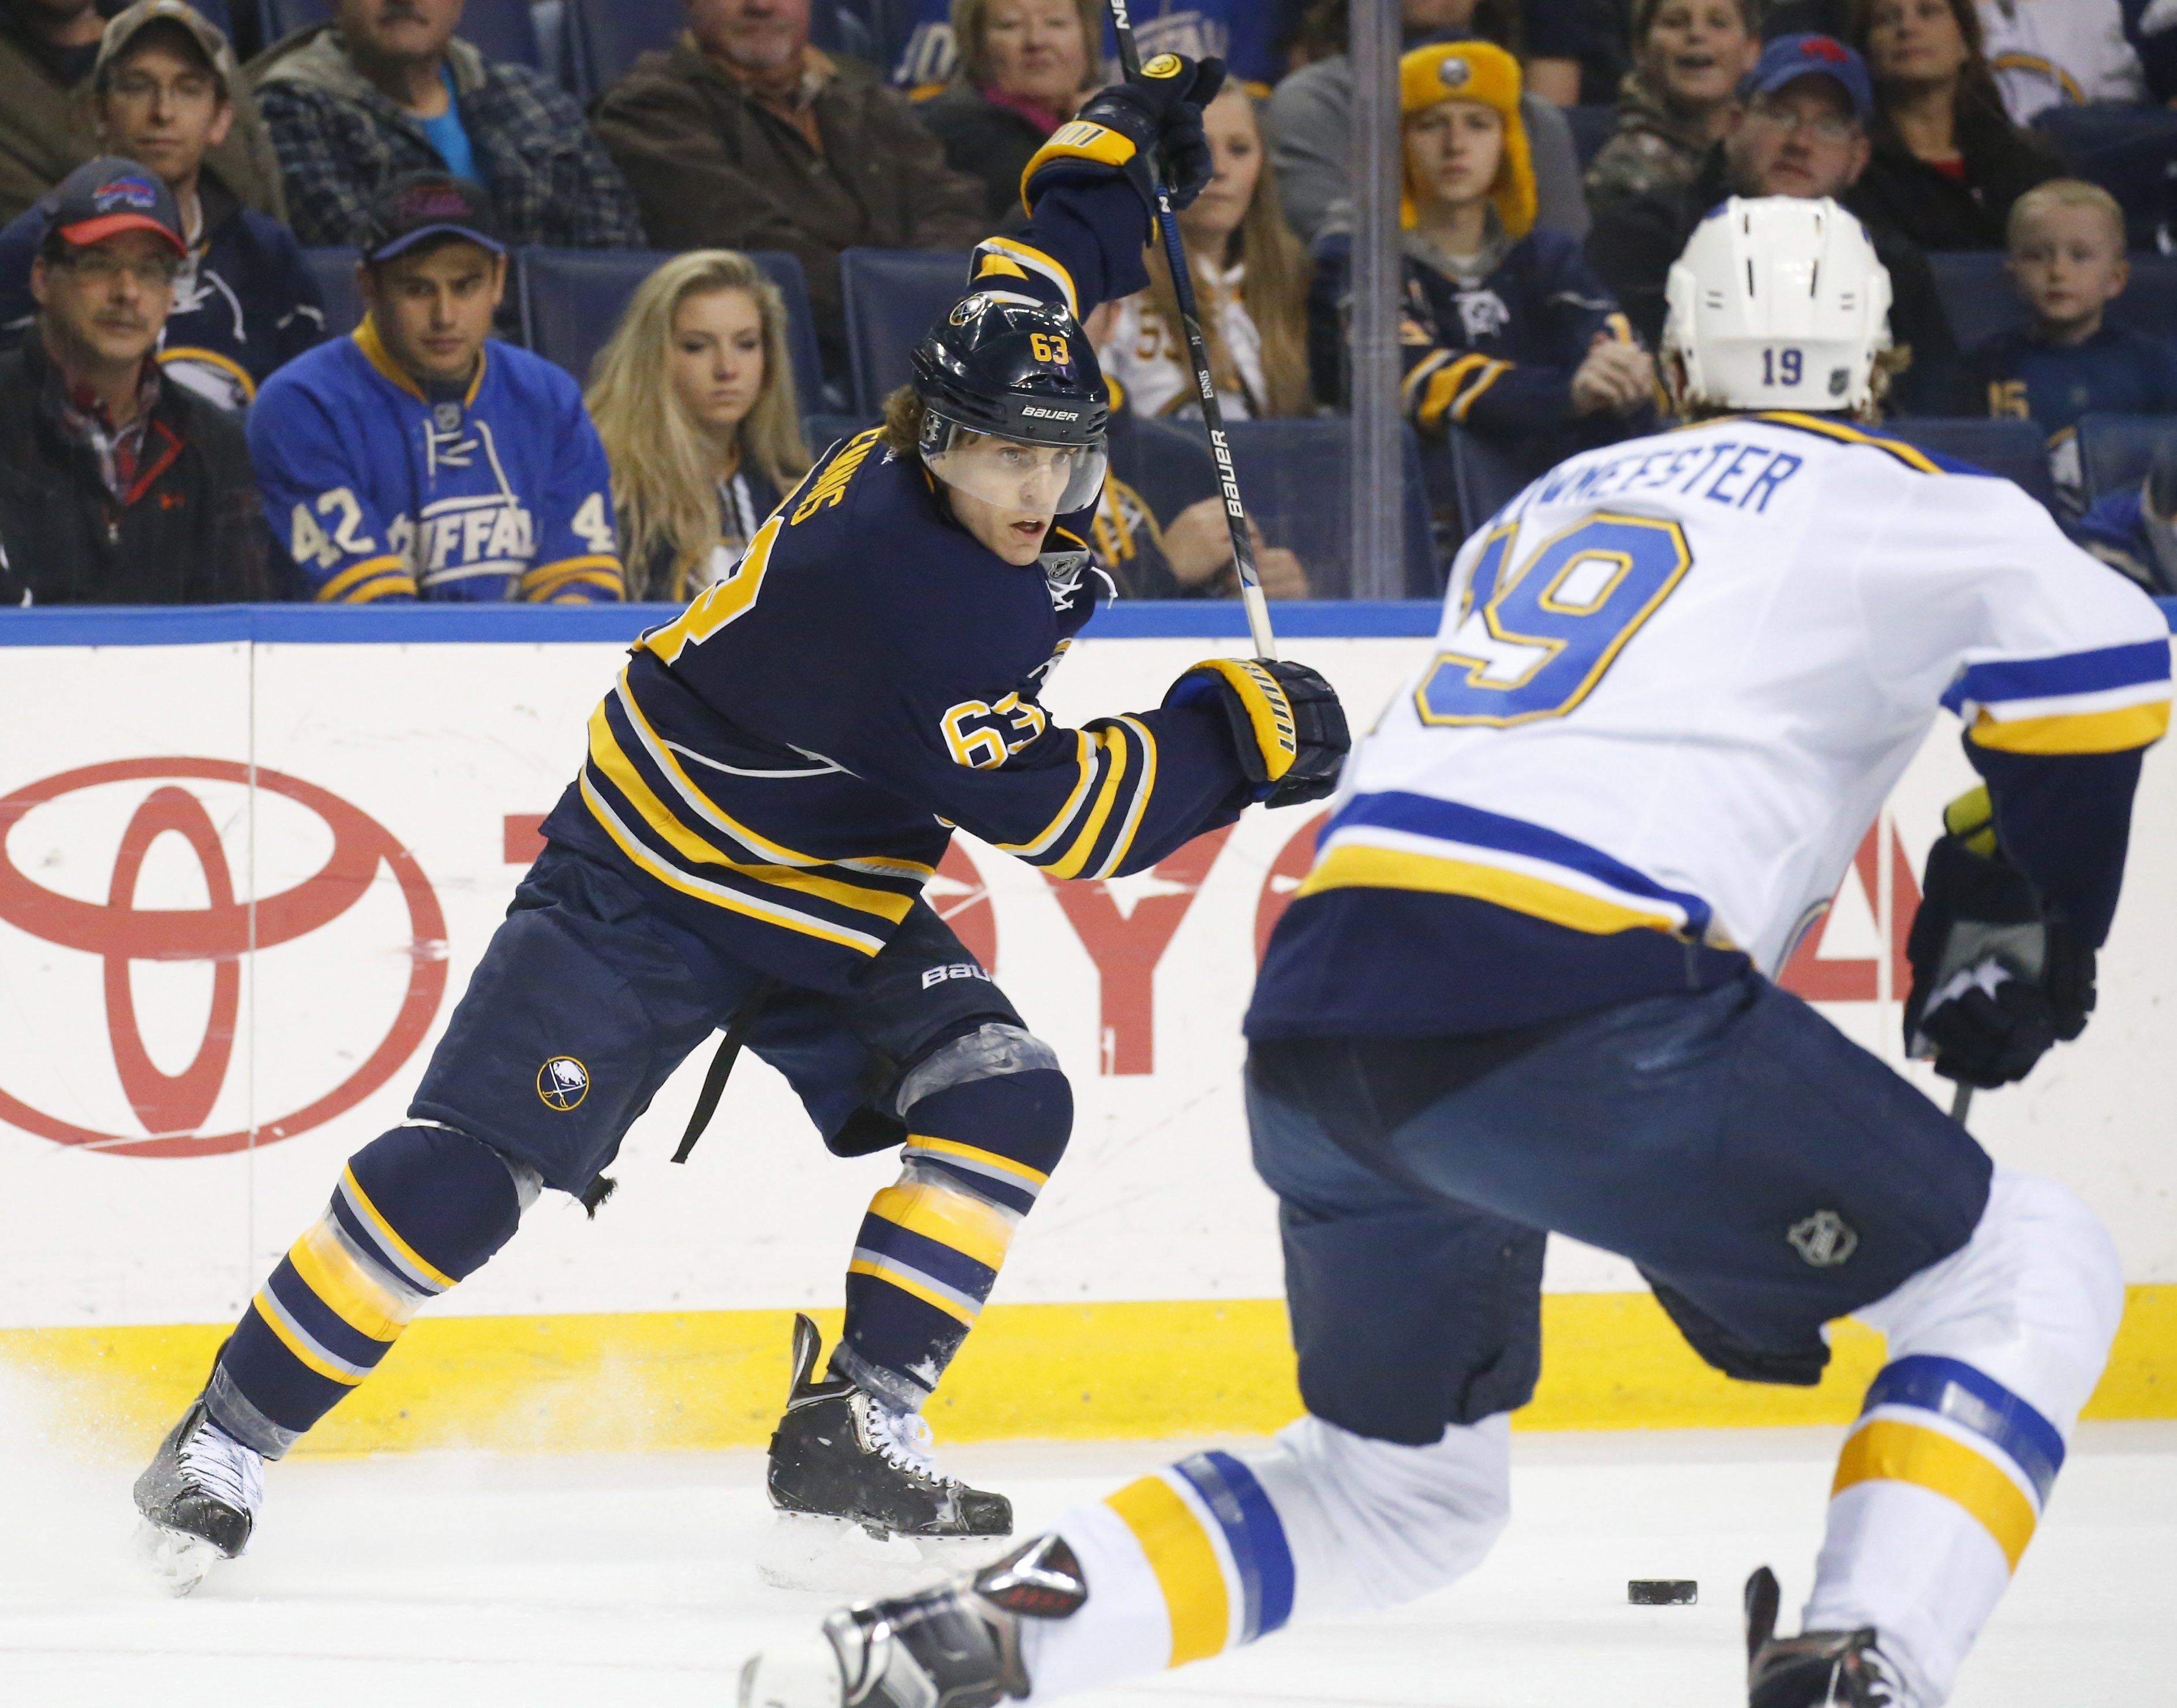 The Sabres' Tyler Ennis looks to fire a shot in the first period. (Mark Mulville/Buffalo News)